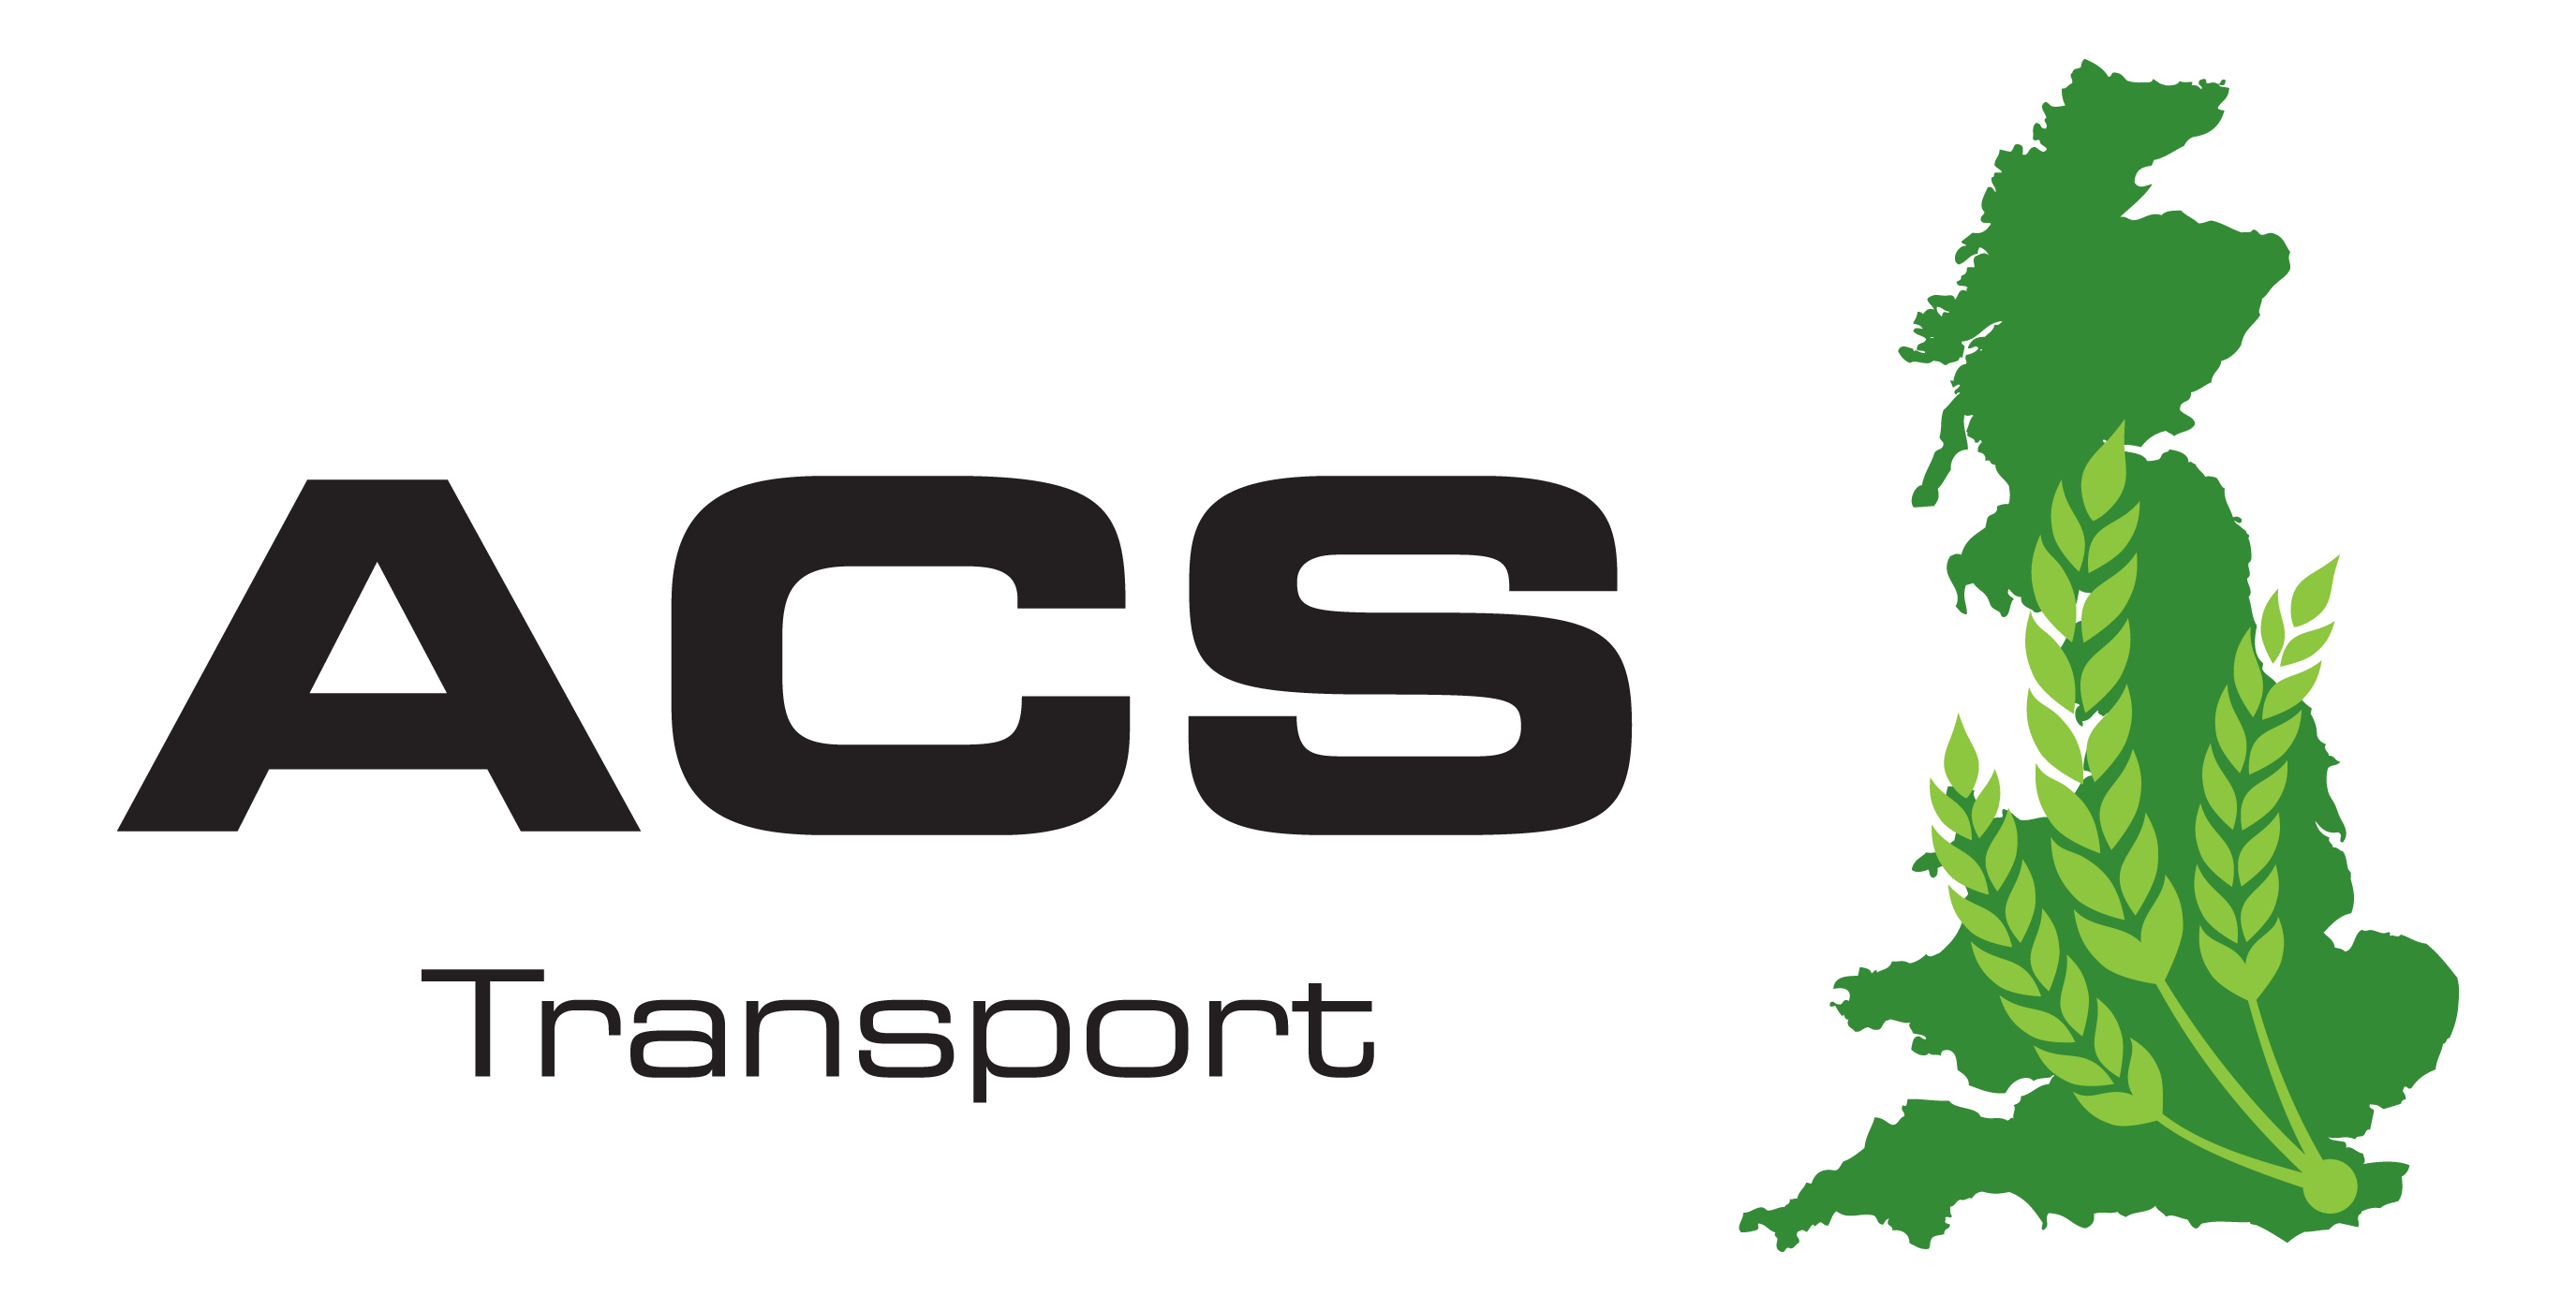 ACS Transport